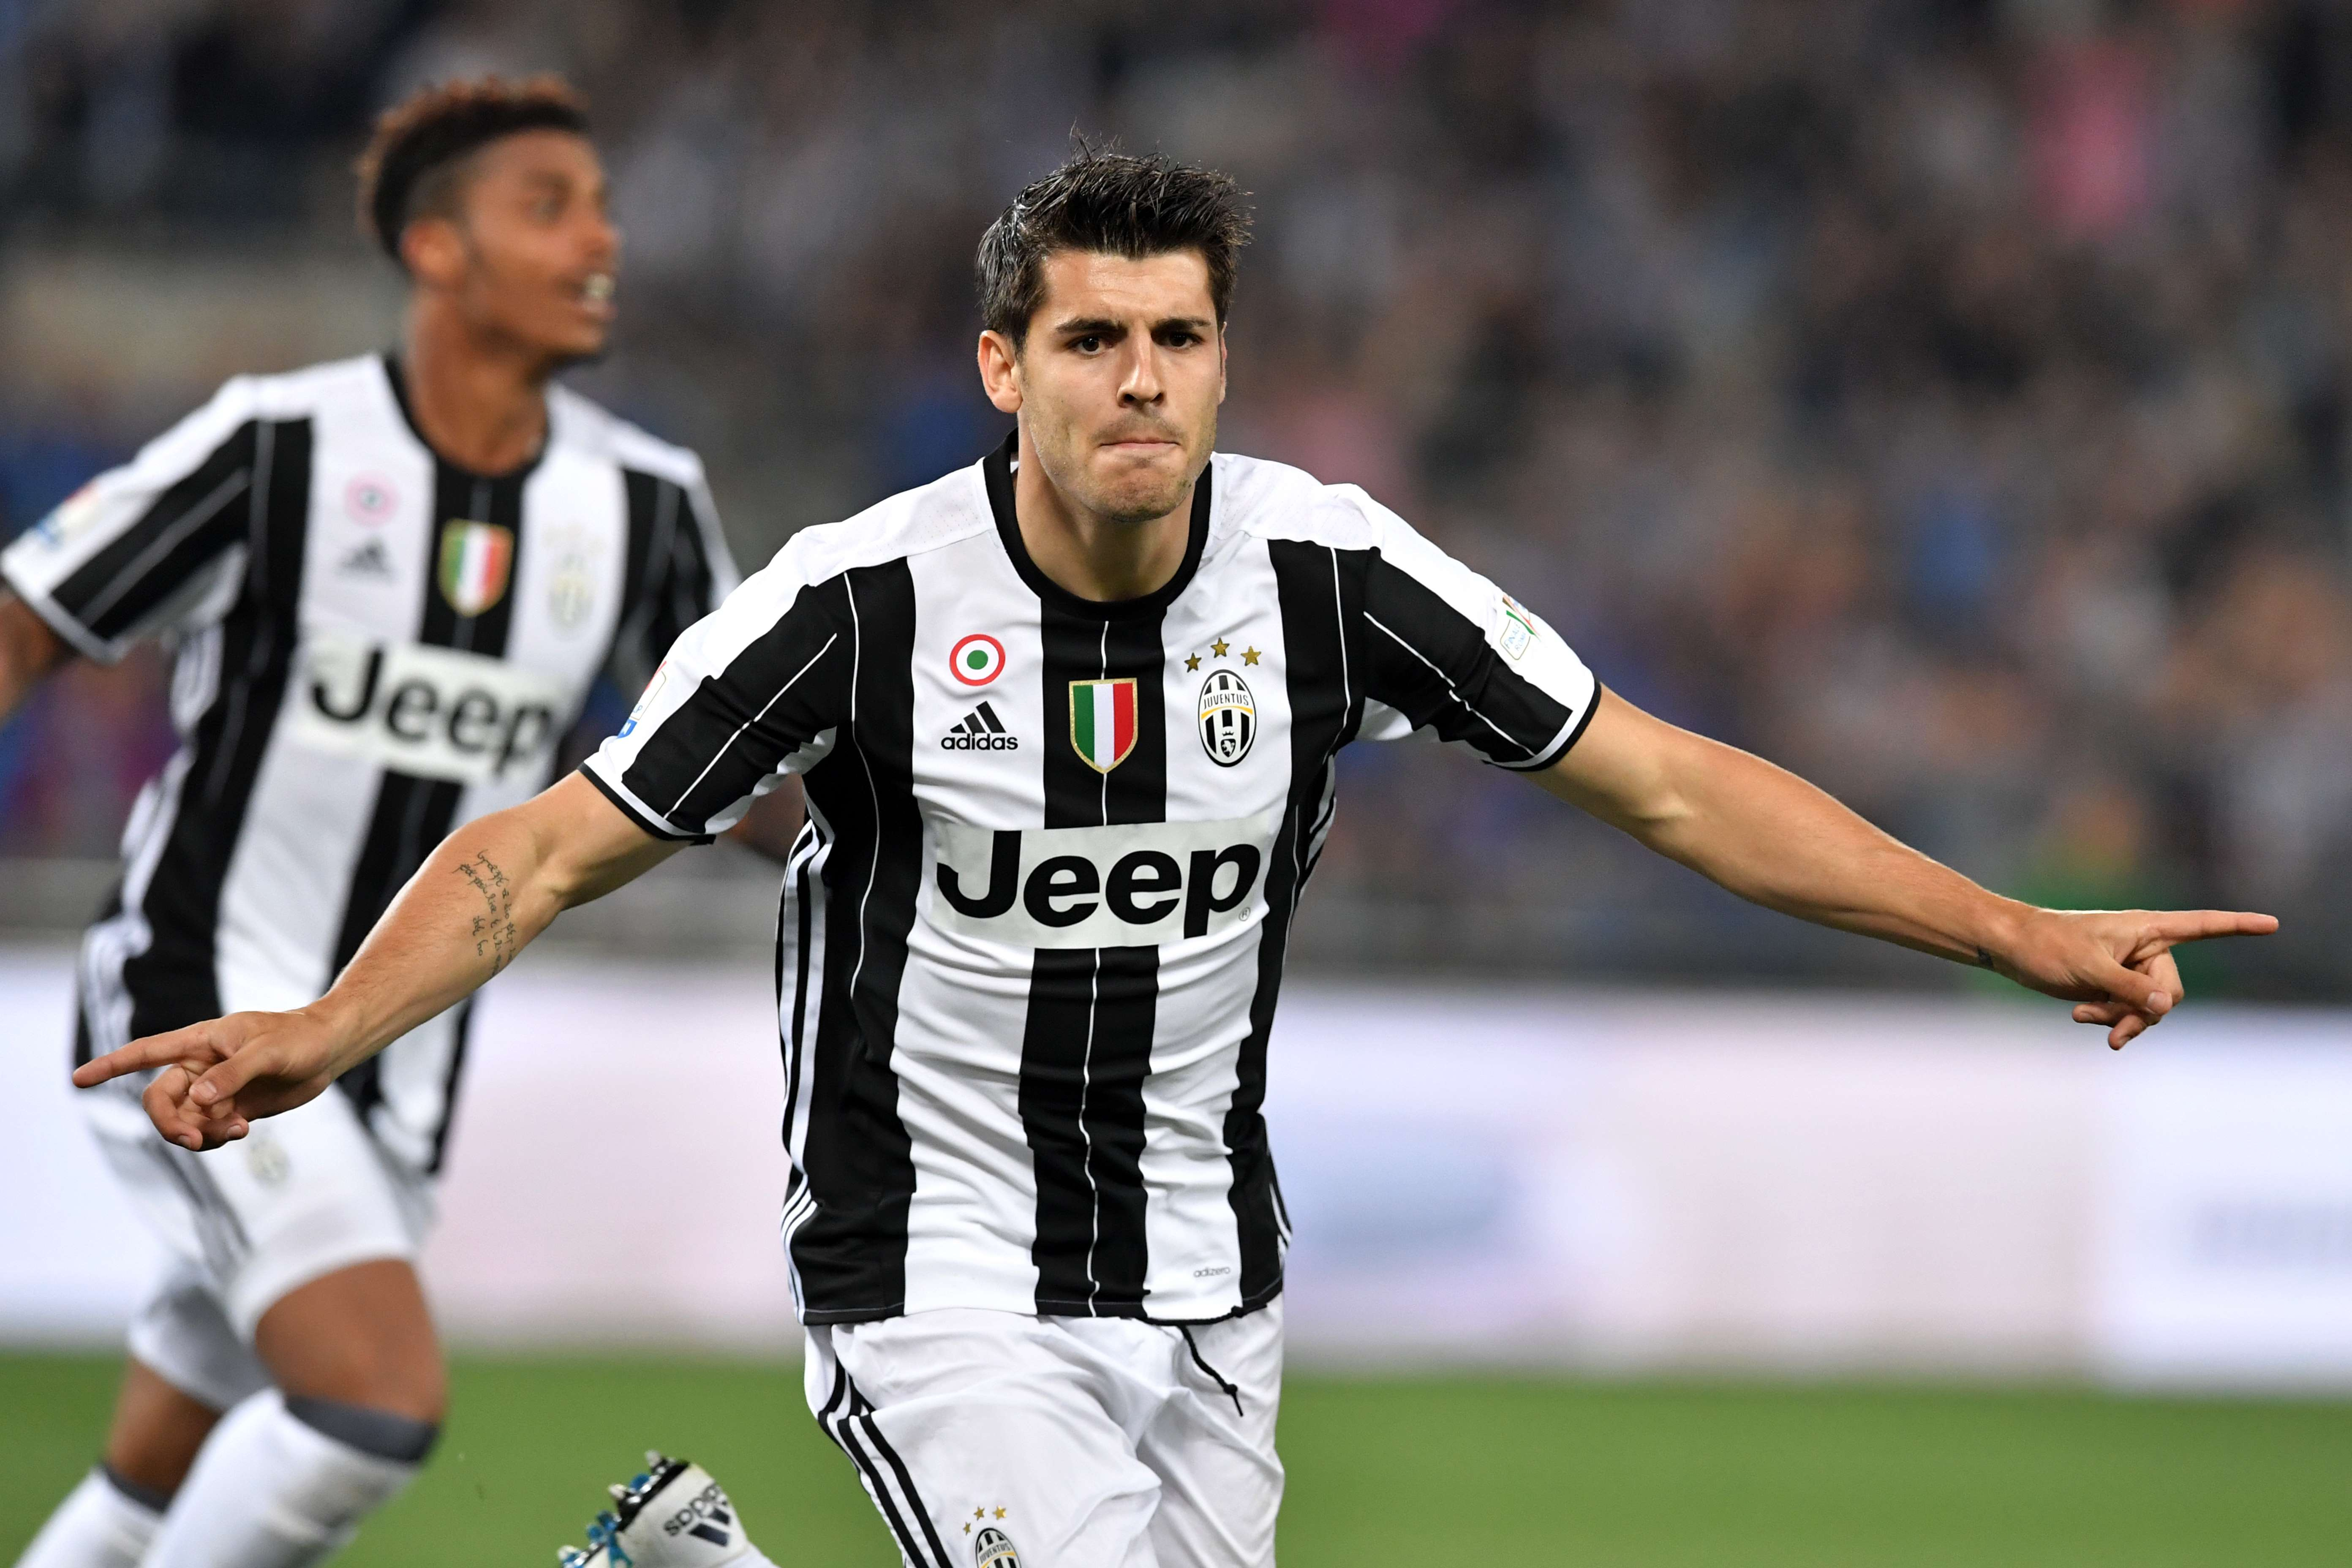 Juventus' forward from Spain Alvaro Morata celerates after scoring during the Italian Tim Cup final football match AC Milan vs Juventus on May 21, 2016 at the Olympic Stadium in Rome.     AFP PHOTO / TIZIANA FABI